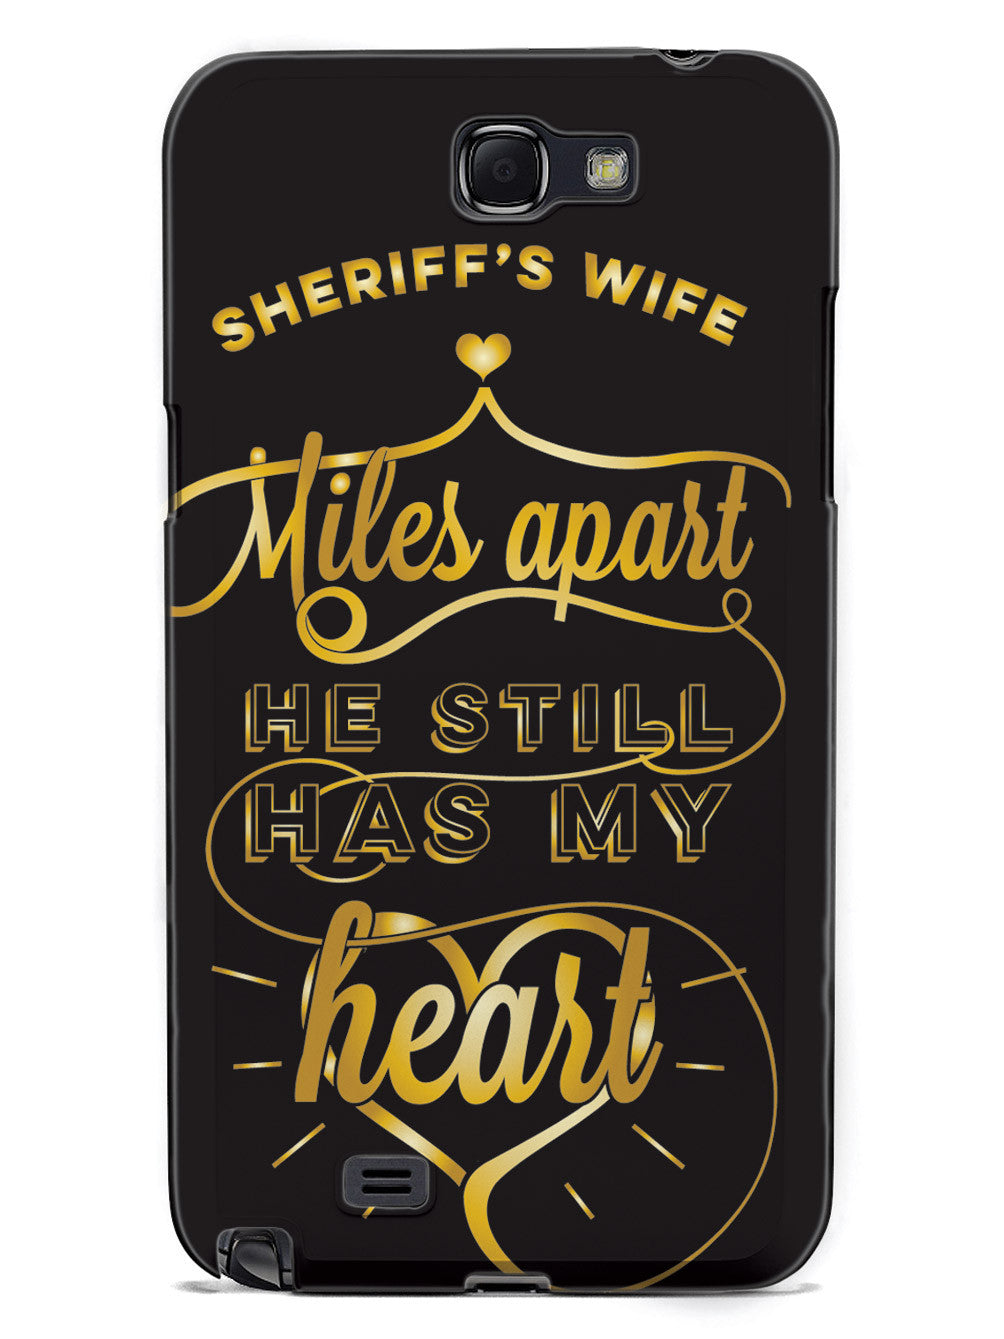 Sheriff's Wife - Miles Apart, Still Has My Heart Case